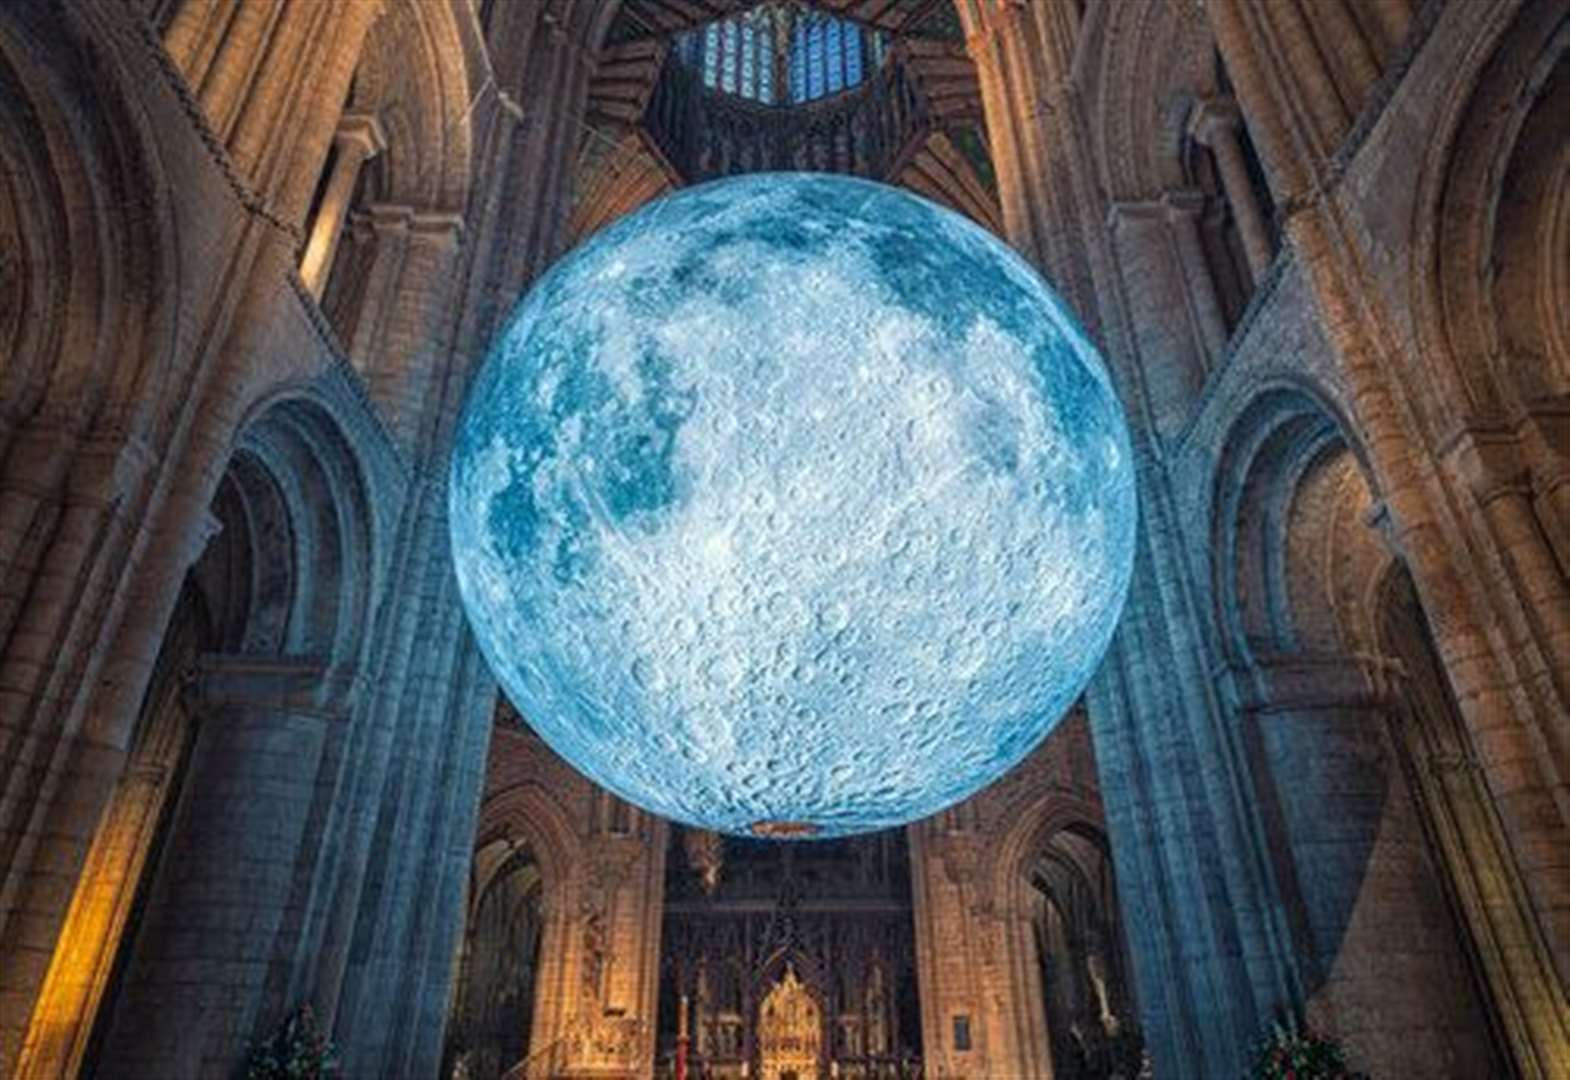 Cathedral exhibition is out of this world